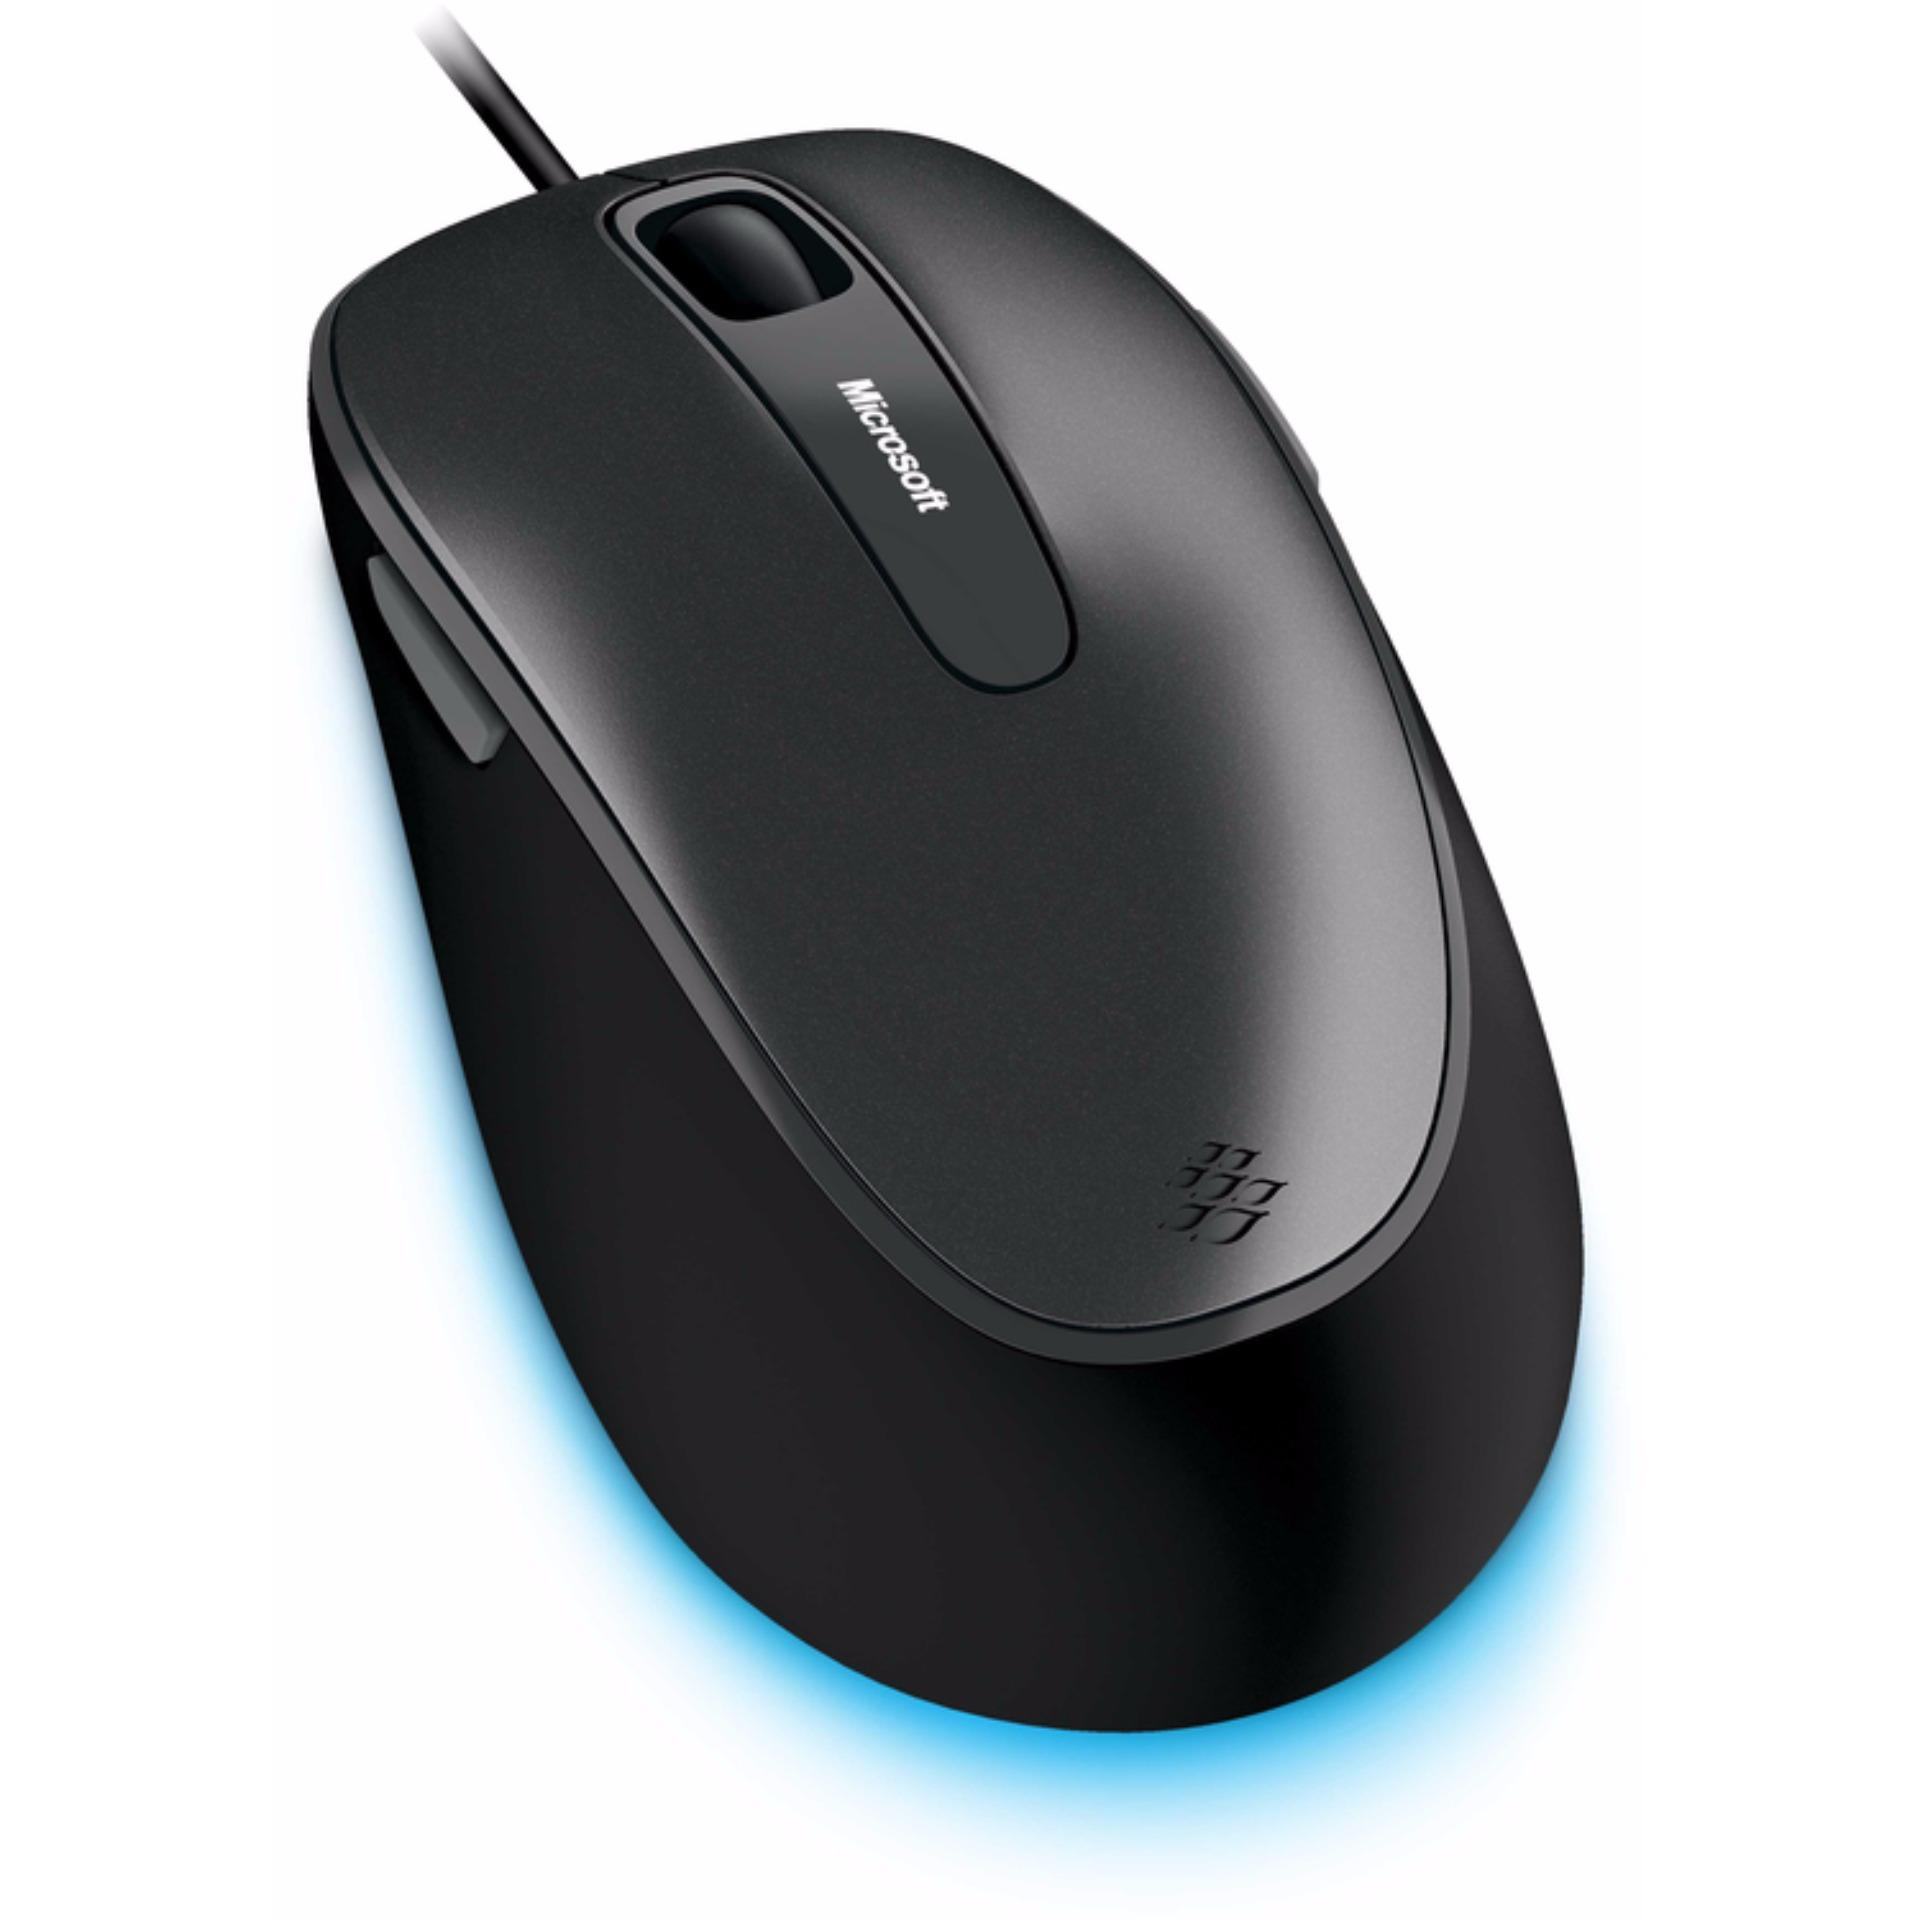 Microsoft Wired Comfort Mouse 4500 Grey Singapore Sculpt